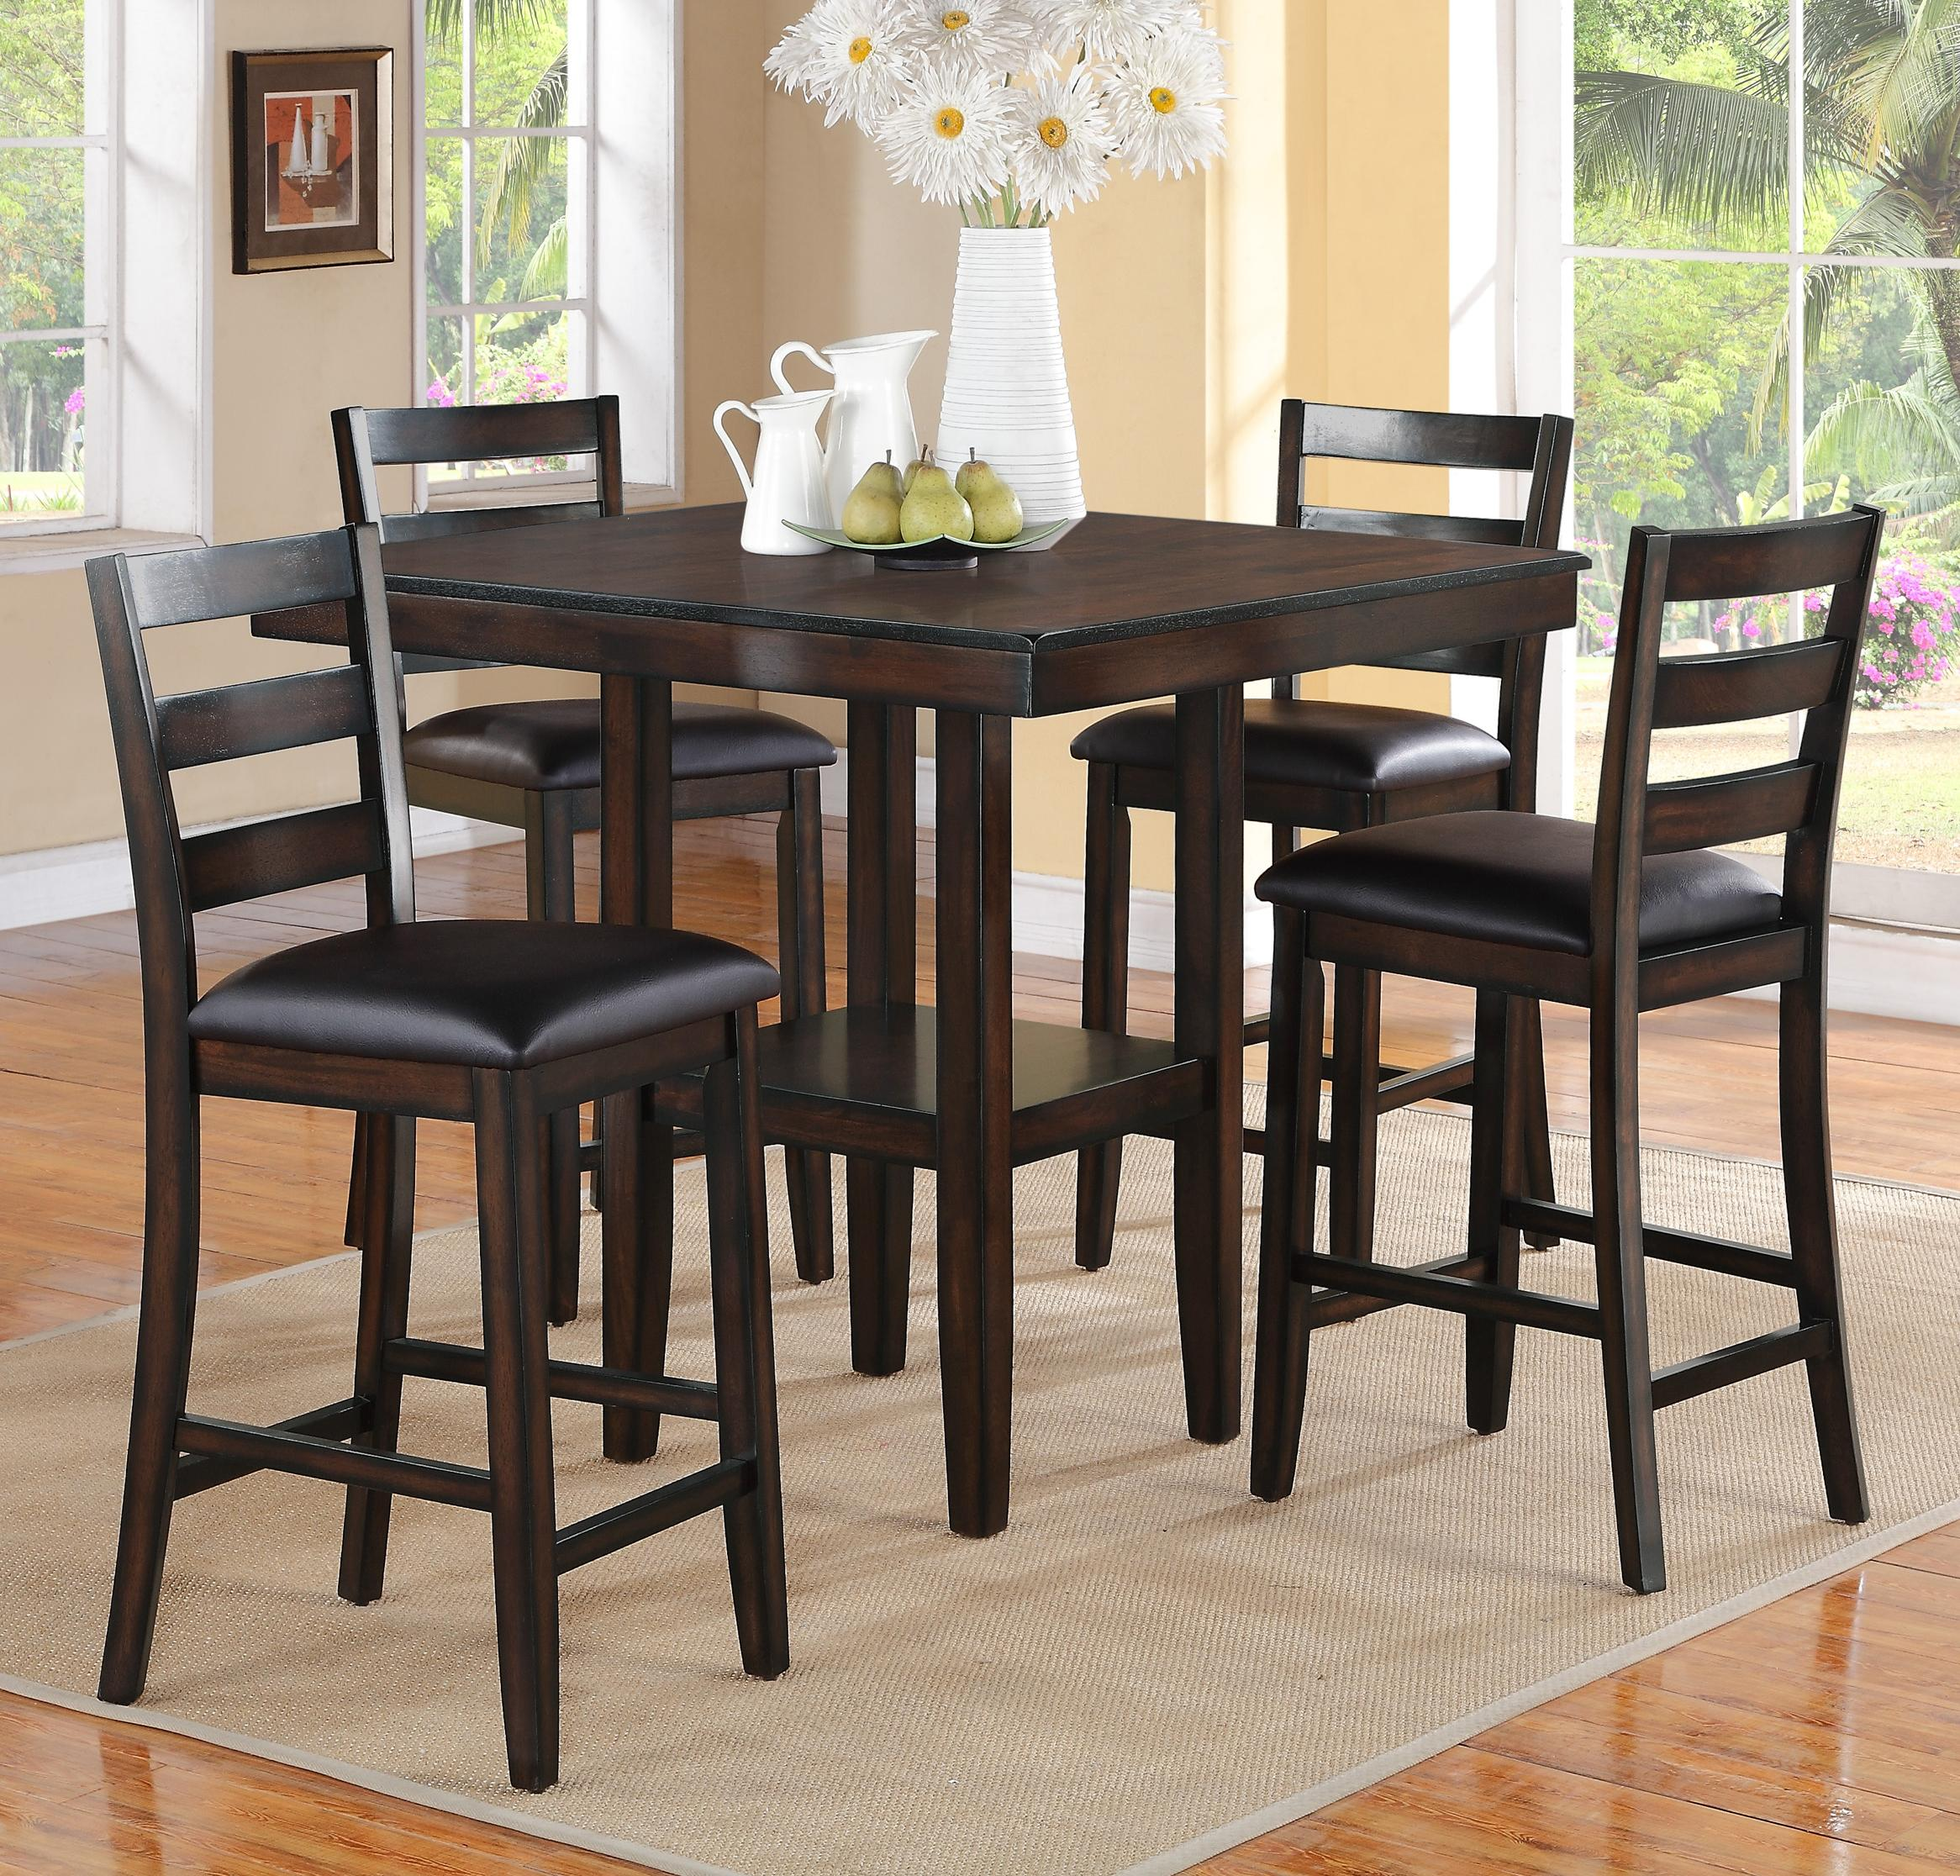 Tahoe 5 Piece Counter Height Table and Chairs Set by Crown Mark at Northeast Factory Direct